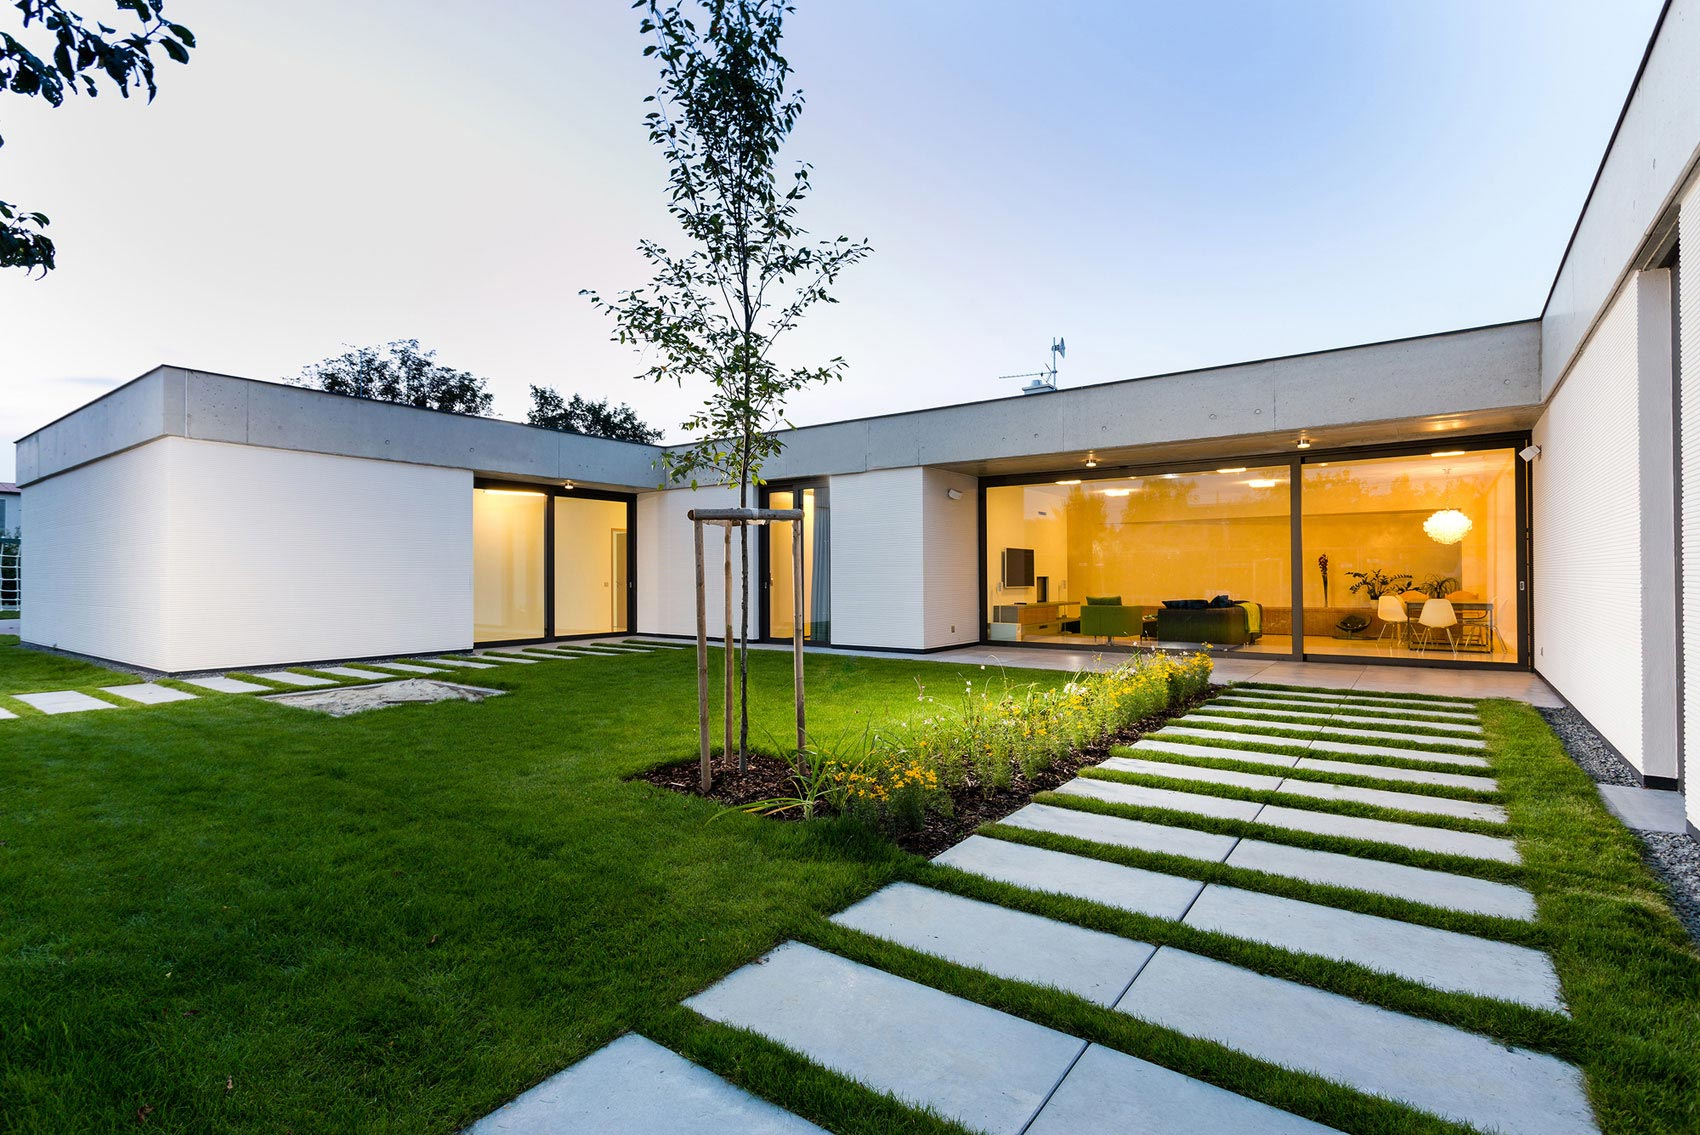 One story modern home in olomouc slavon n by jvarchitekt for Modern house design blog